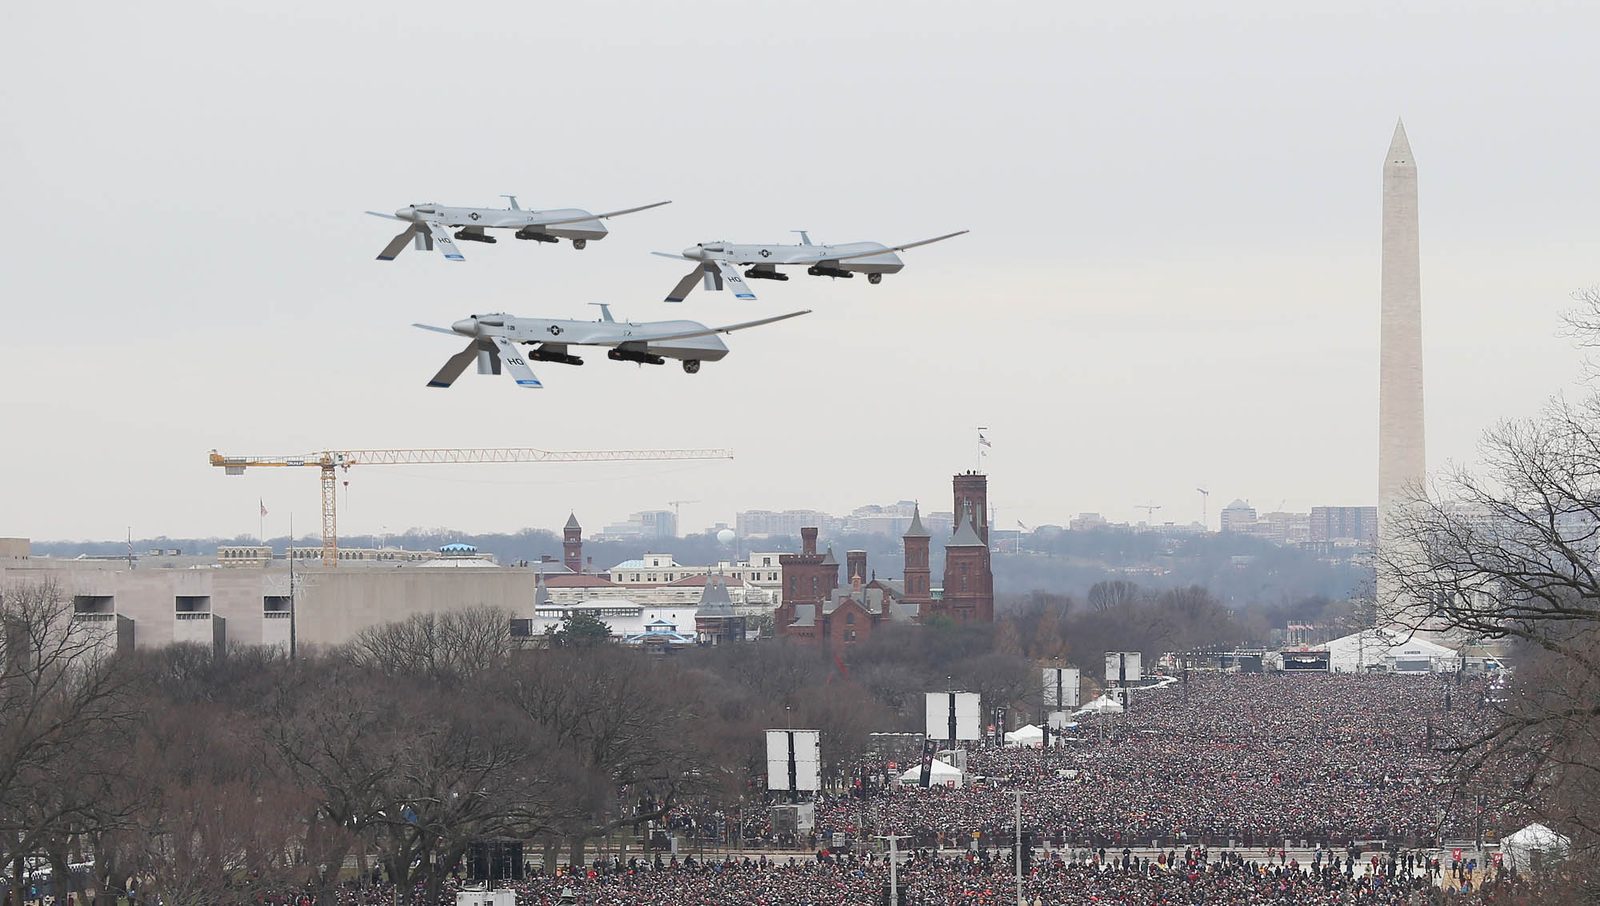 Obama Begins Inauguration Festivities With Ceremonial Drone Flyover